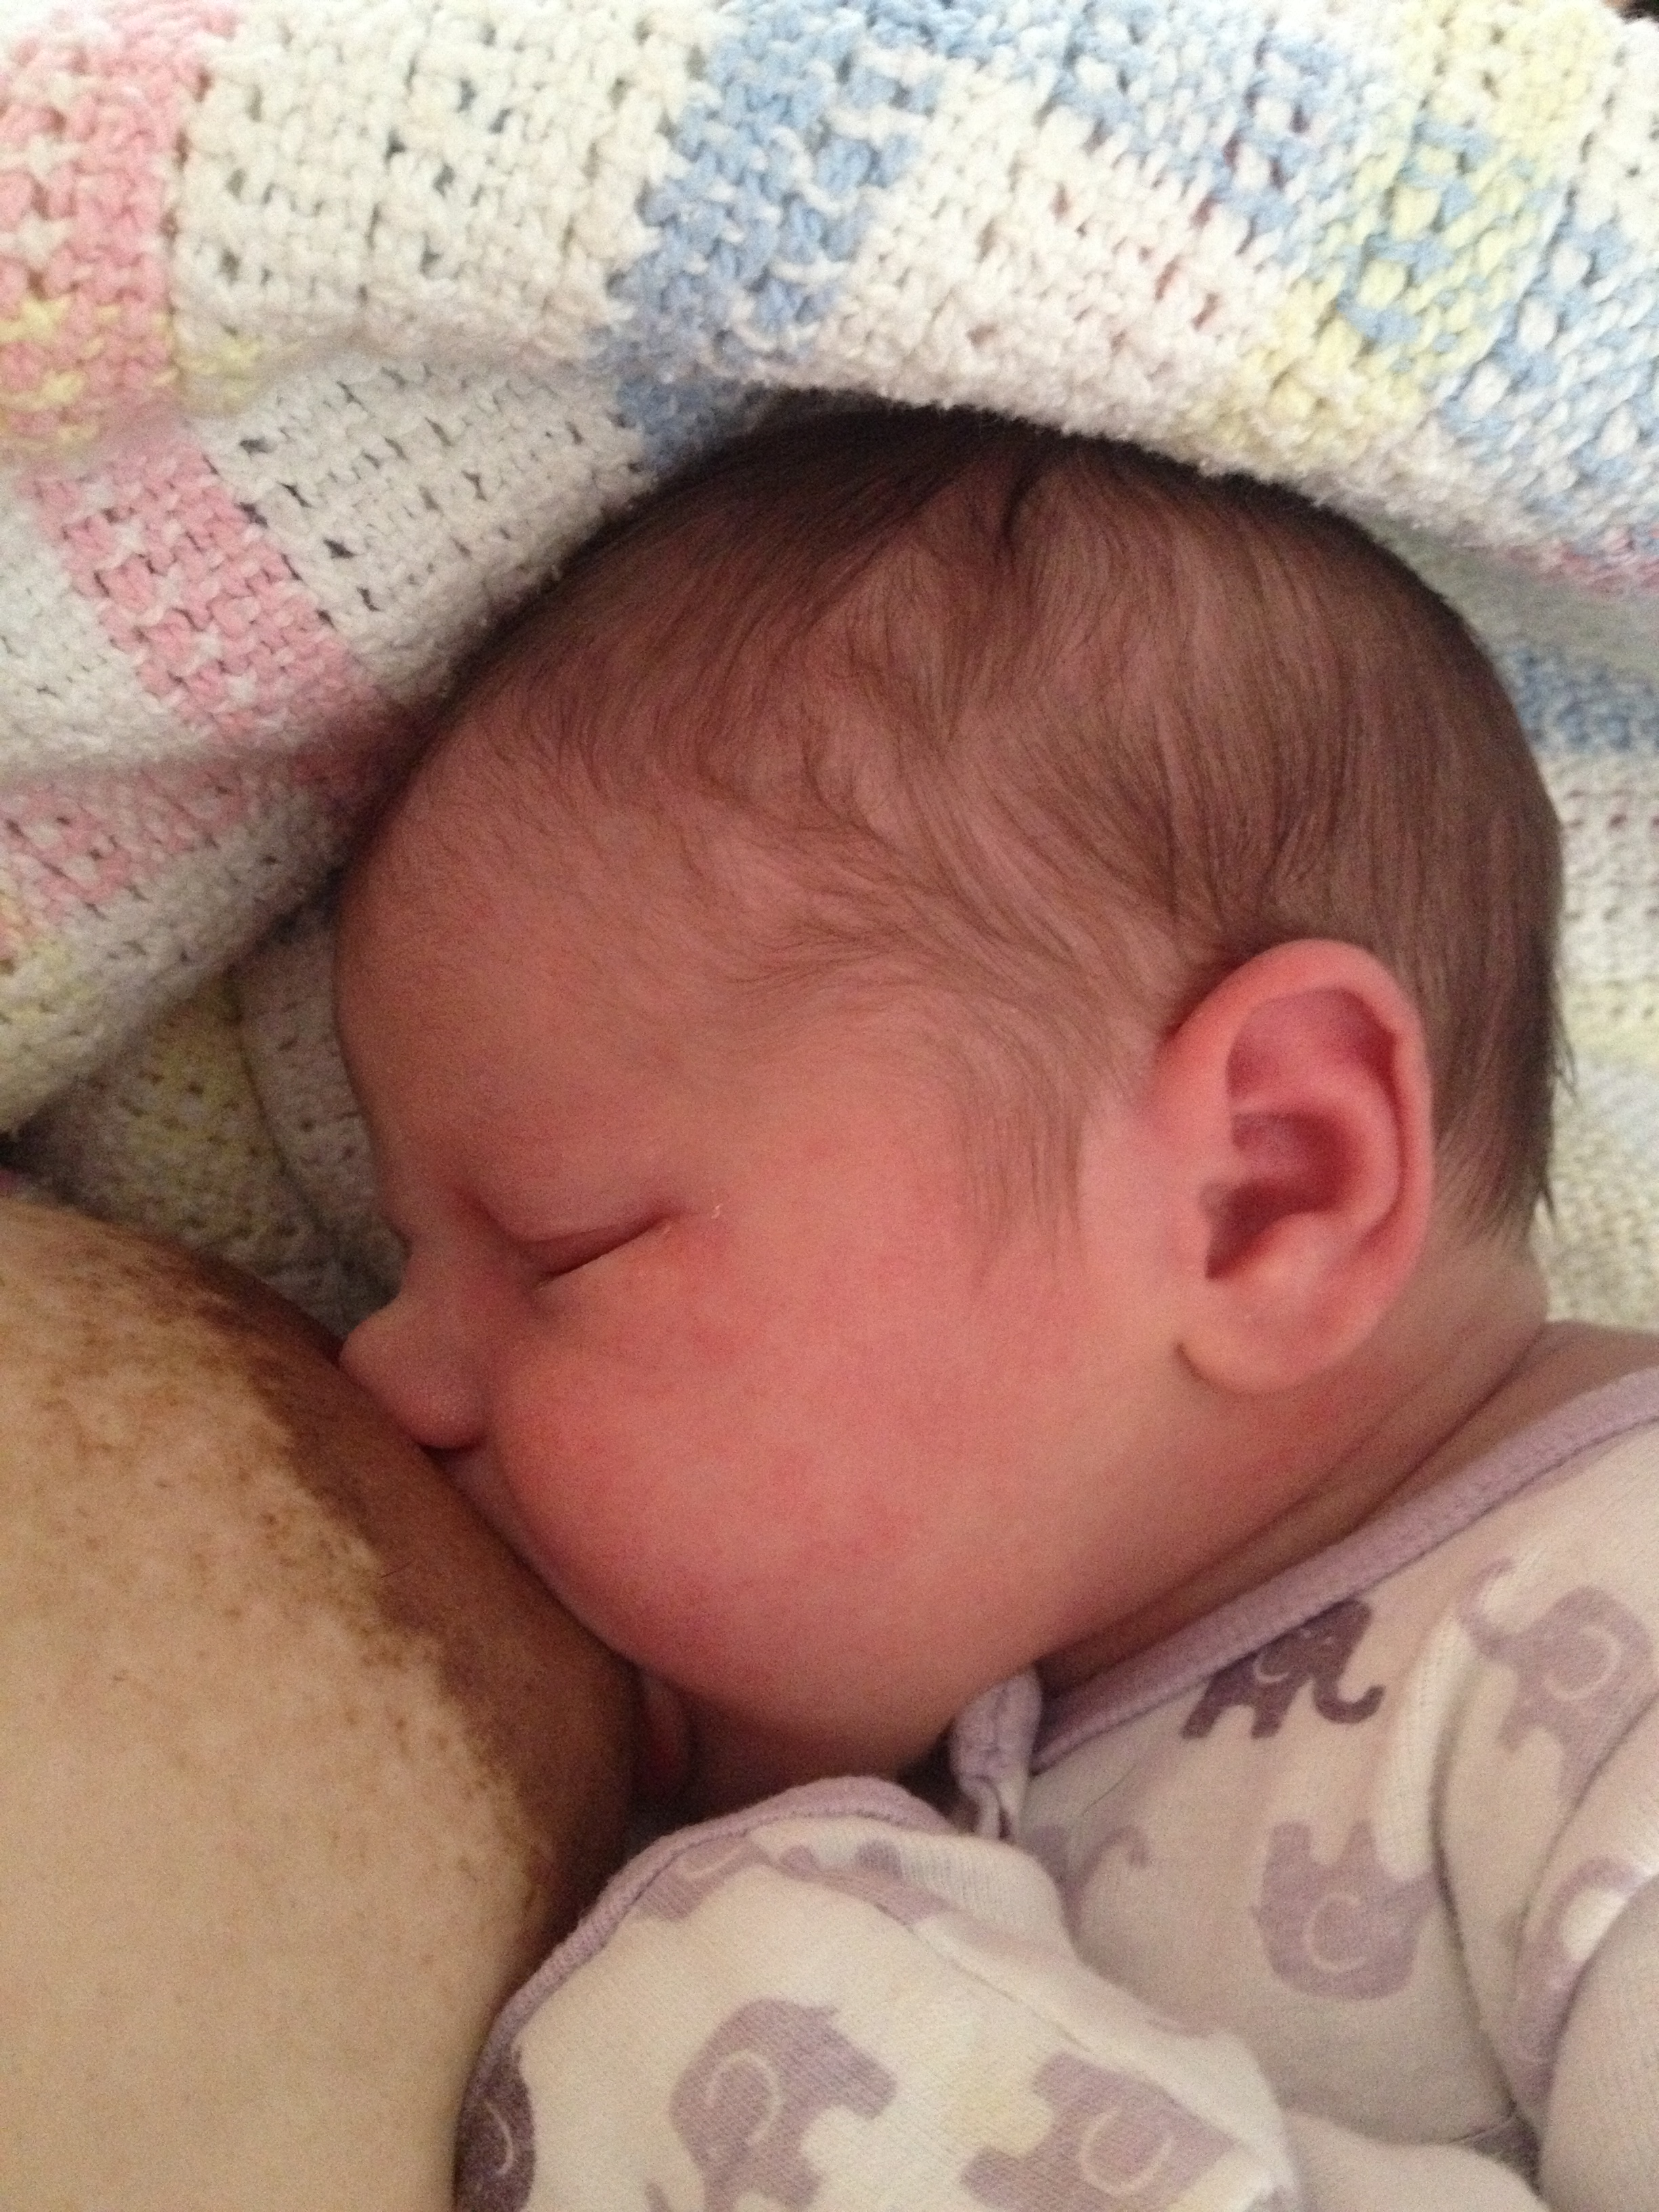 Nora, 1 day old. Latched on and breastfeeding well...or so I thought